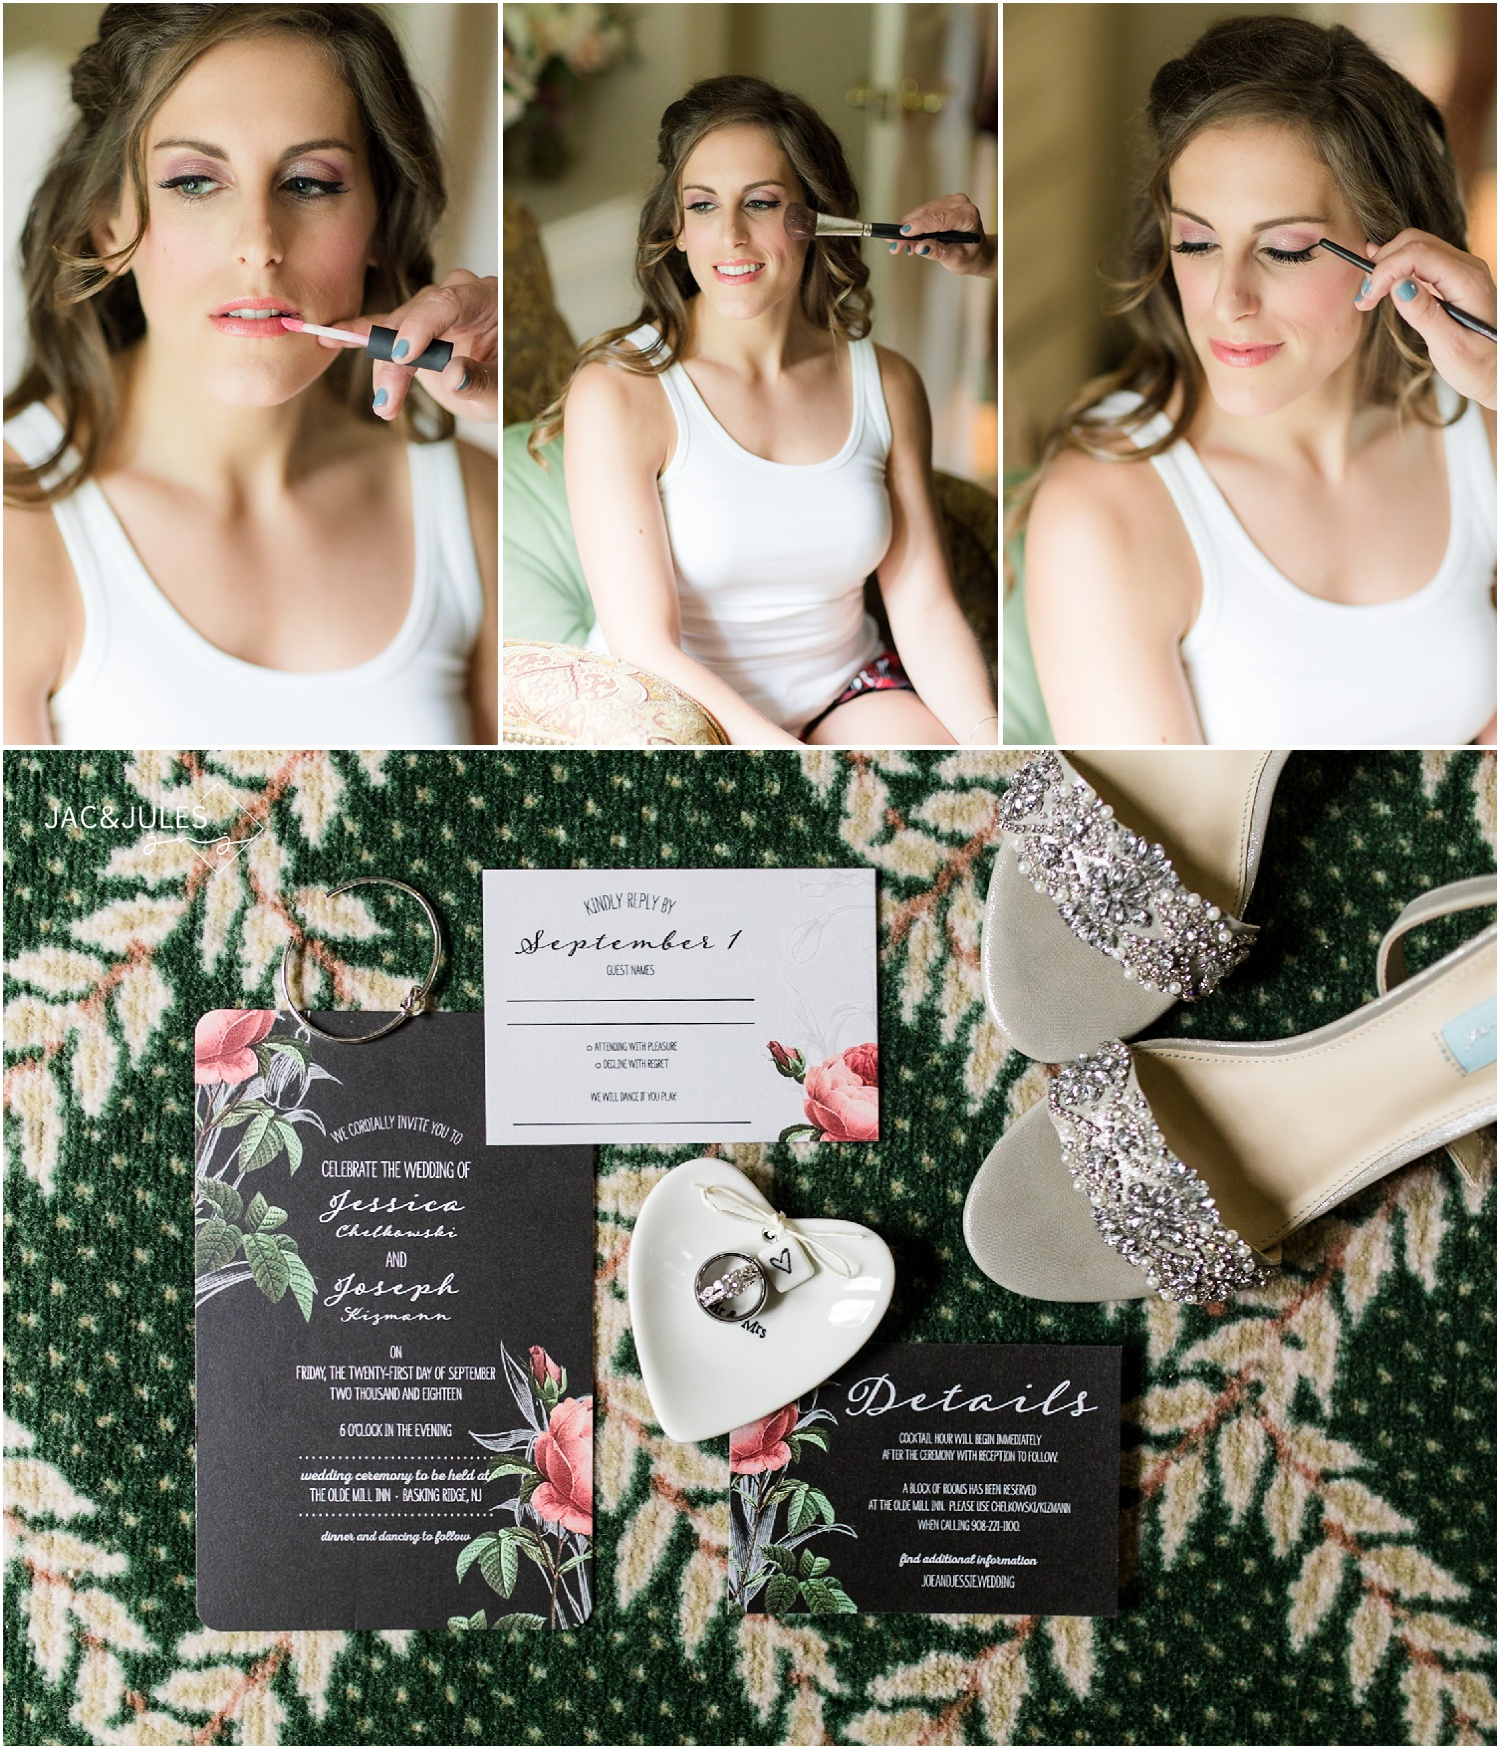 Photo invitation and bridal makeup at The Olde Mill Inn in Basking Ridge, NJ.